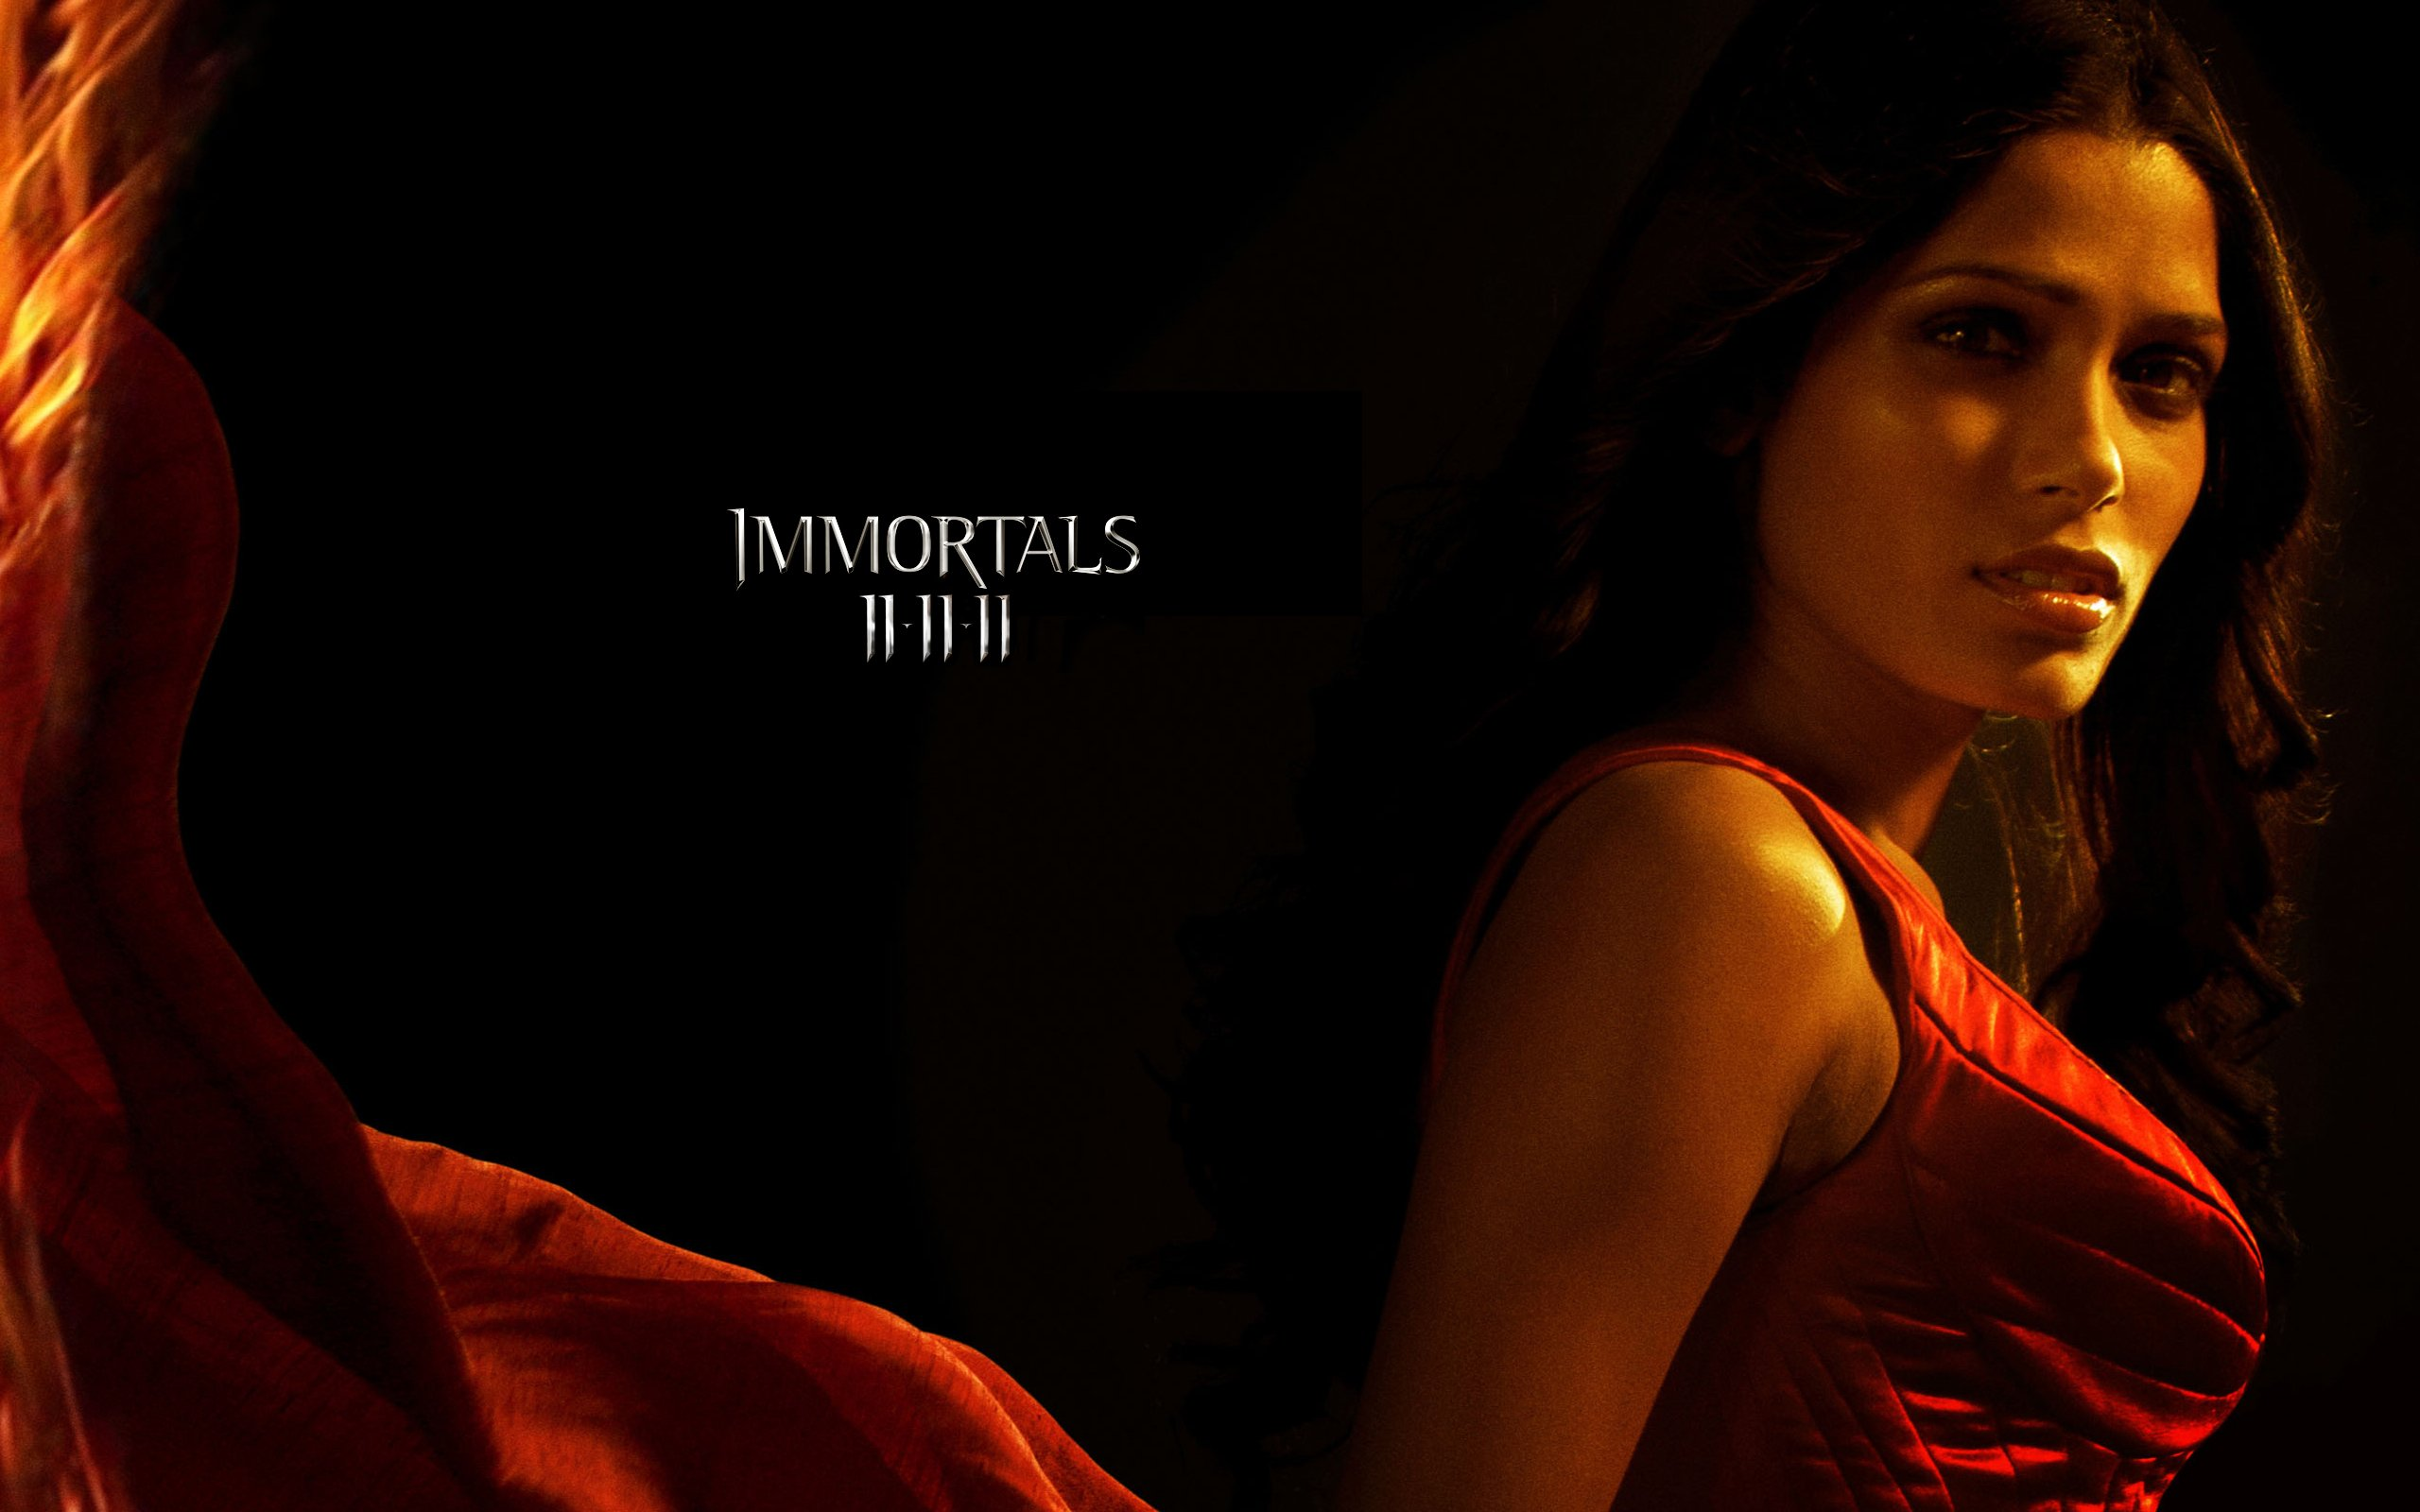 Immortals Movie Poster Movie Film Poster